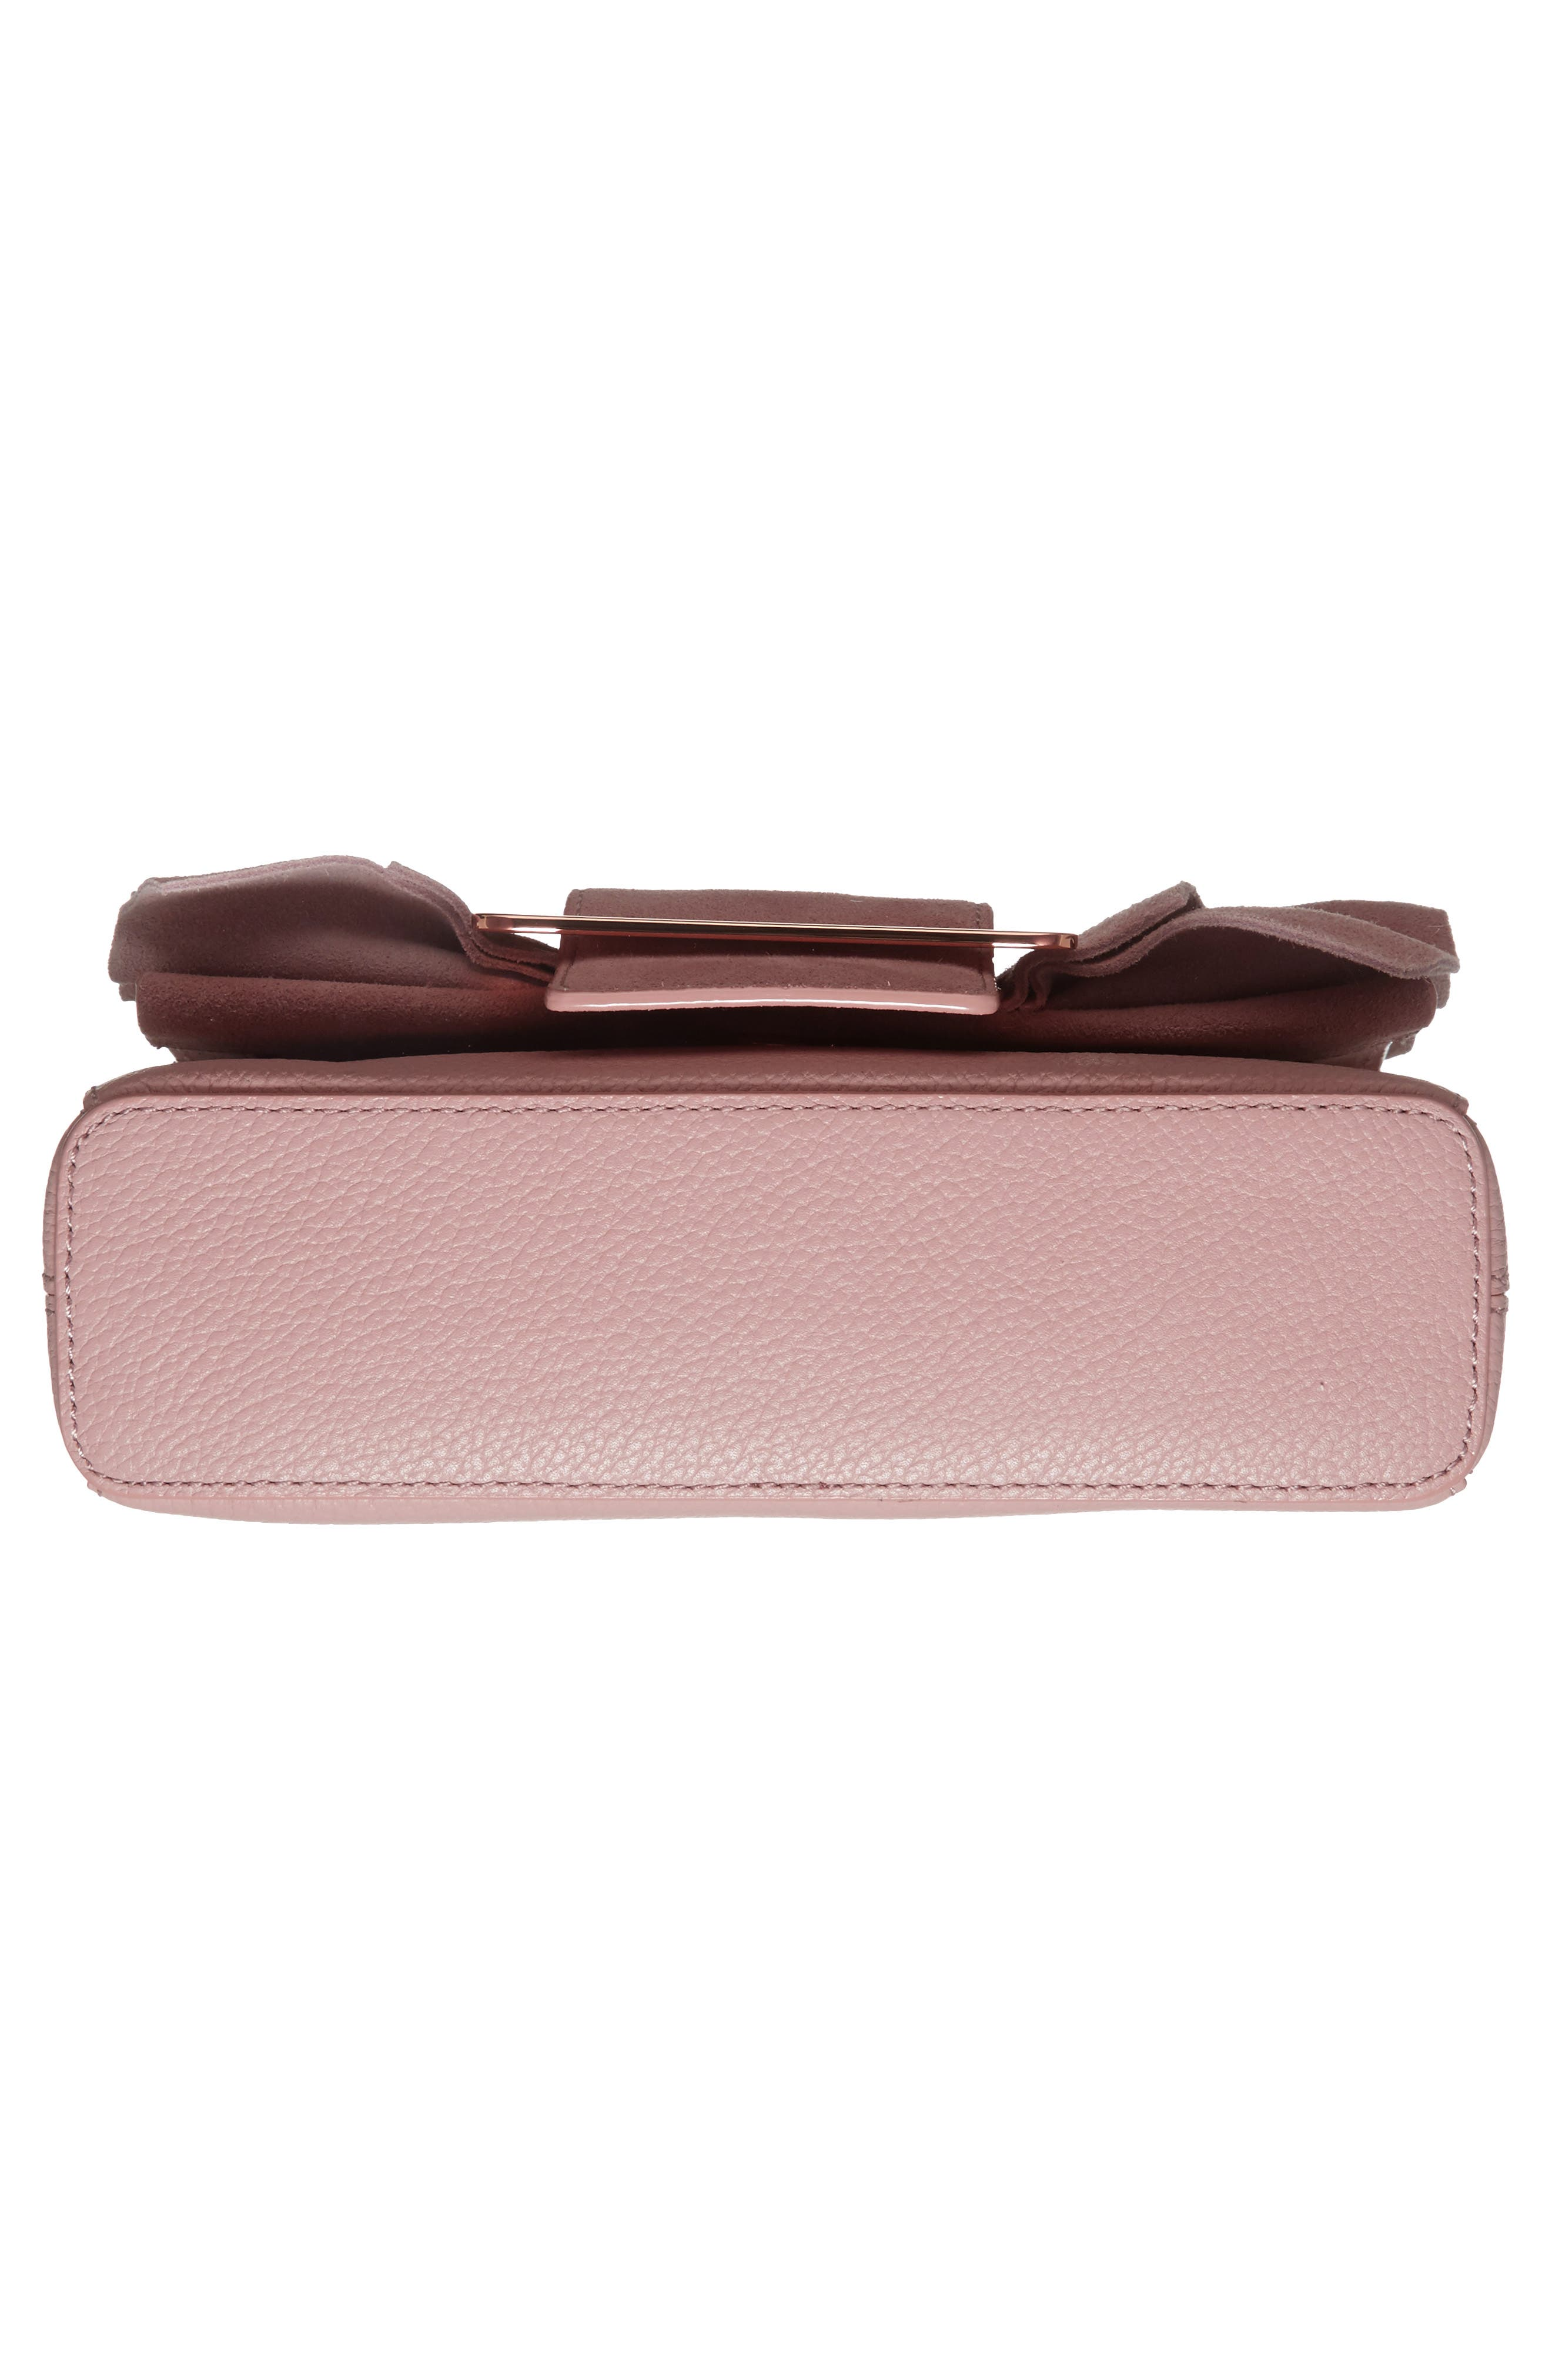 Nerinee Bow Buckle Clutch,                             Alternate thumbnail 18, color,